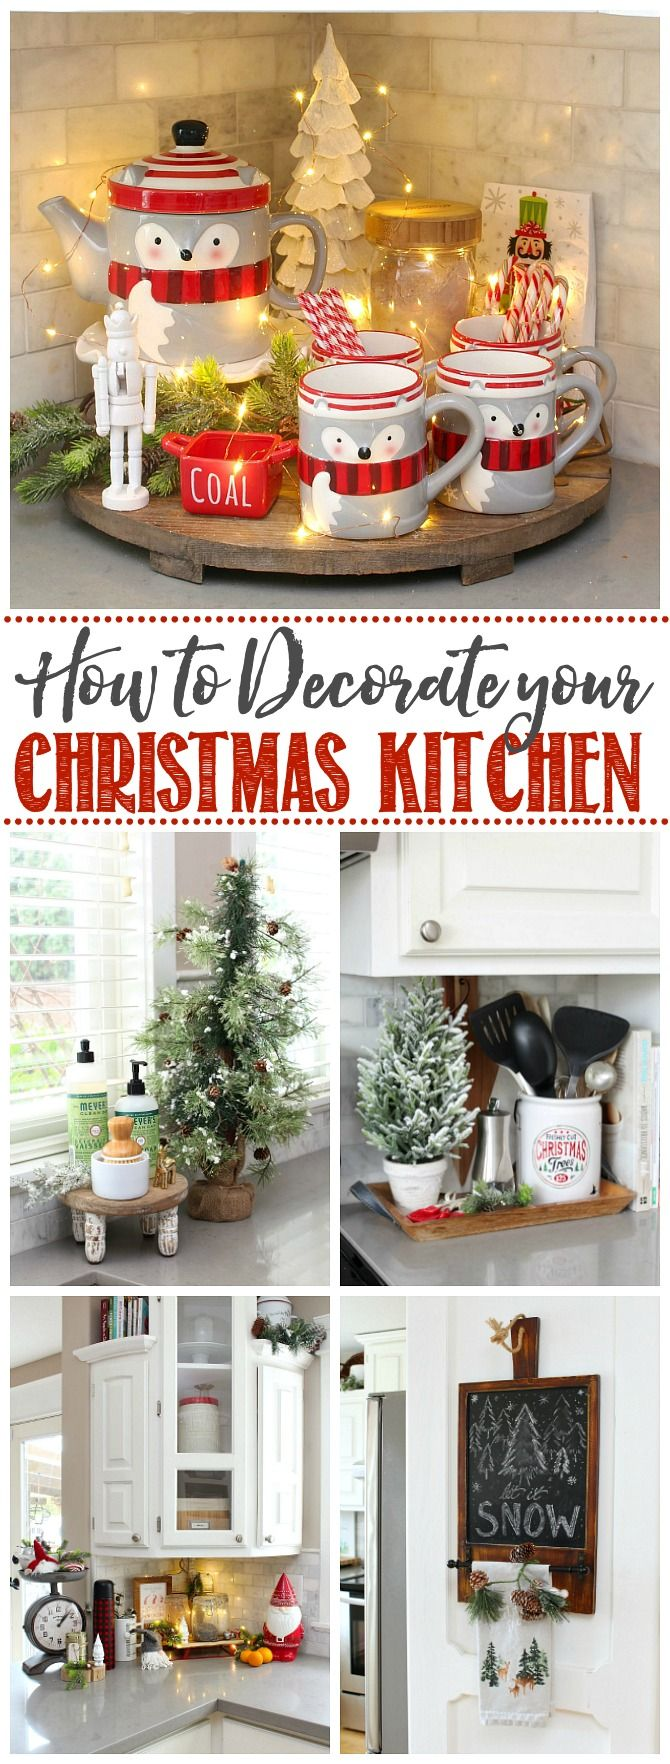 How to decorate the kitchen for Christmas. Lots of simple tips to add that seasonal touch to your Christmas kitchen. #christmaskitchen #kitchendecor #christmasdecor #christmasdecorating #whitekitchen #farmhousestyle